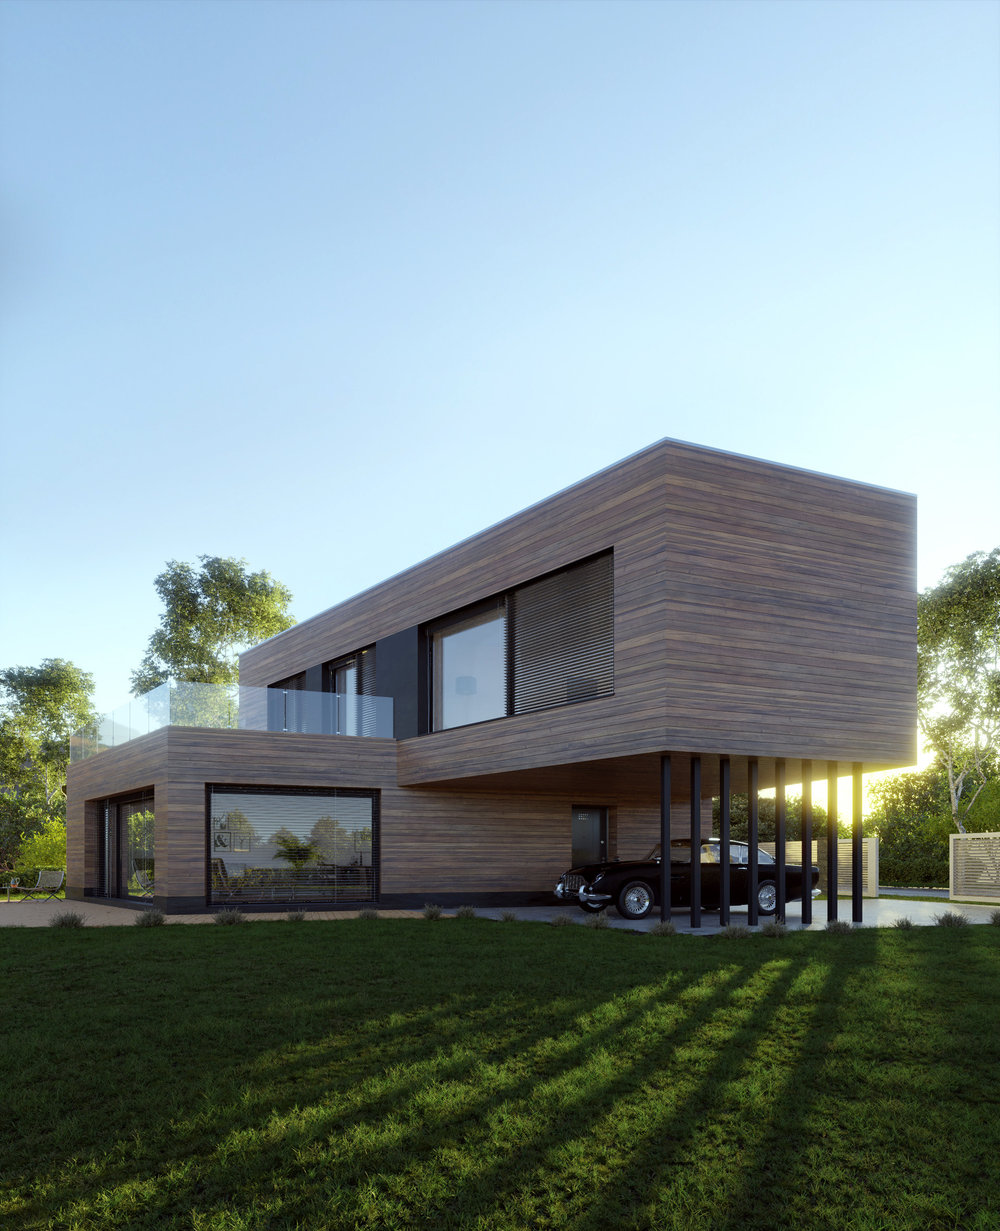 House by Lavarch Architects by Jan Morek, using the Wood and Concrete textures.